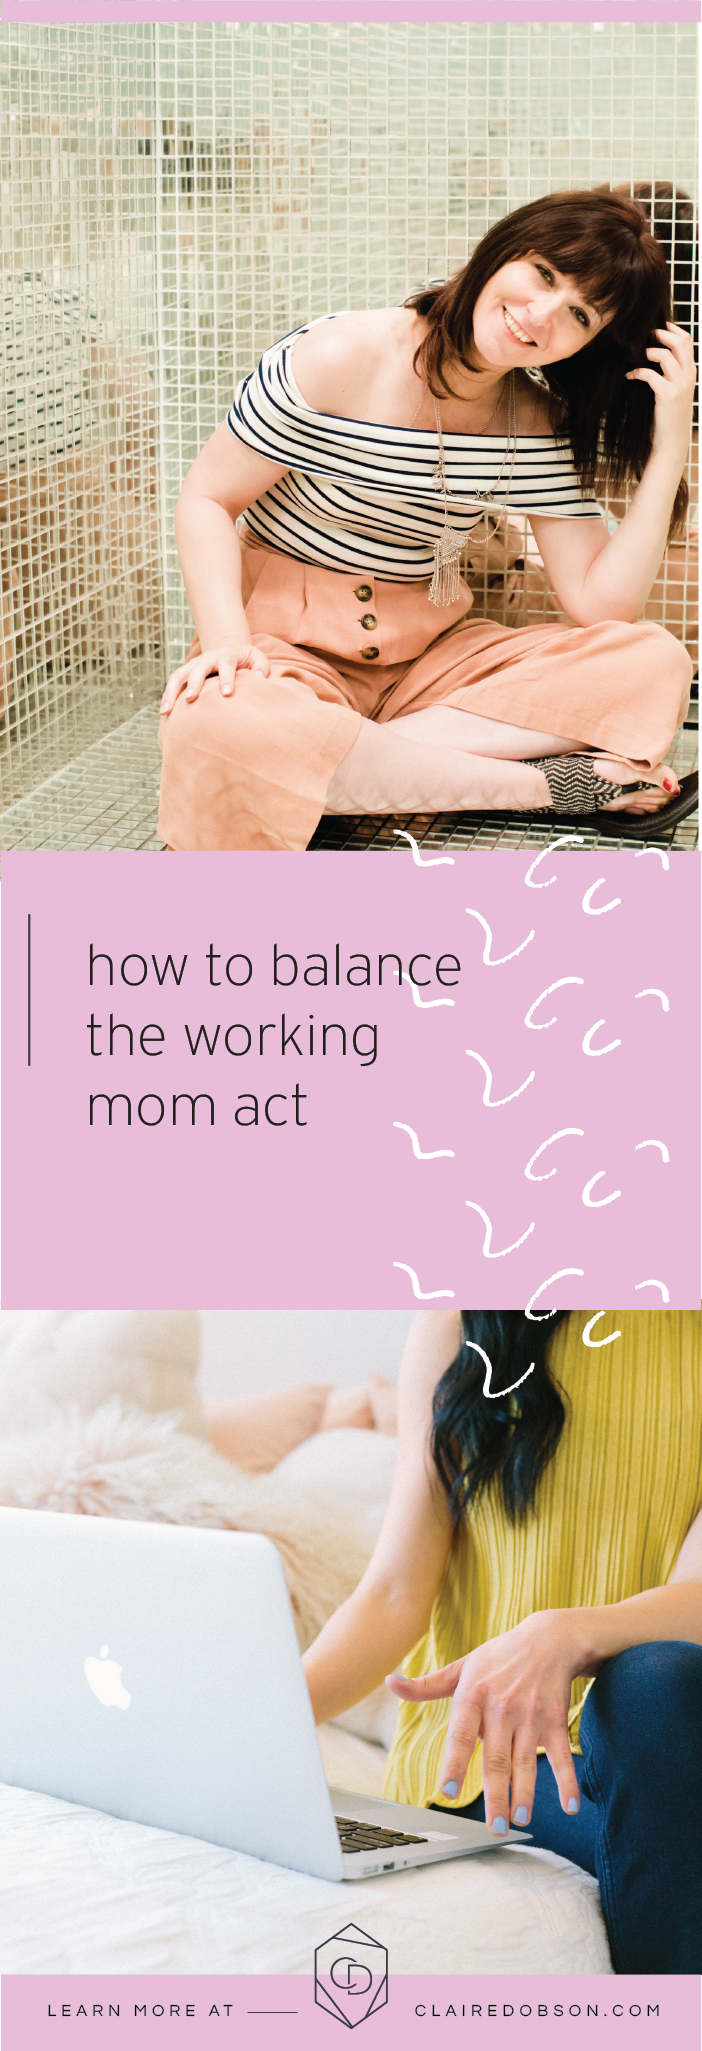 trying to balance work and #motherhood right now or preparing your business for motherhood, I want to pass along some advice I wish someone would have told me. It would have saved me hours of wasted mental energy trying to please other people and prove that I could become a successful entrepreneur, even with a newborn on my hip. #workingmom #mompreneur #momlife